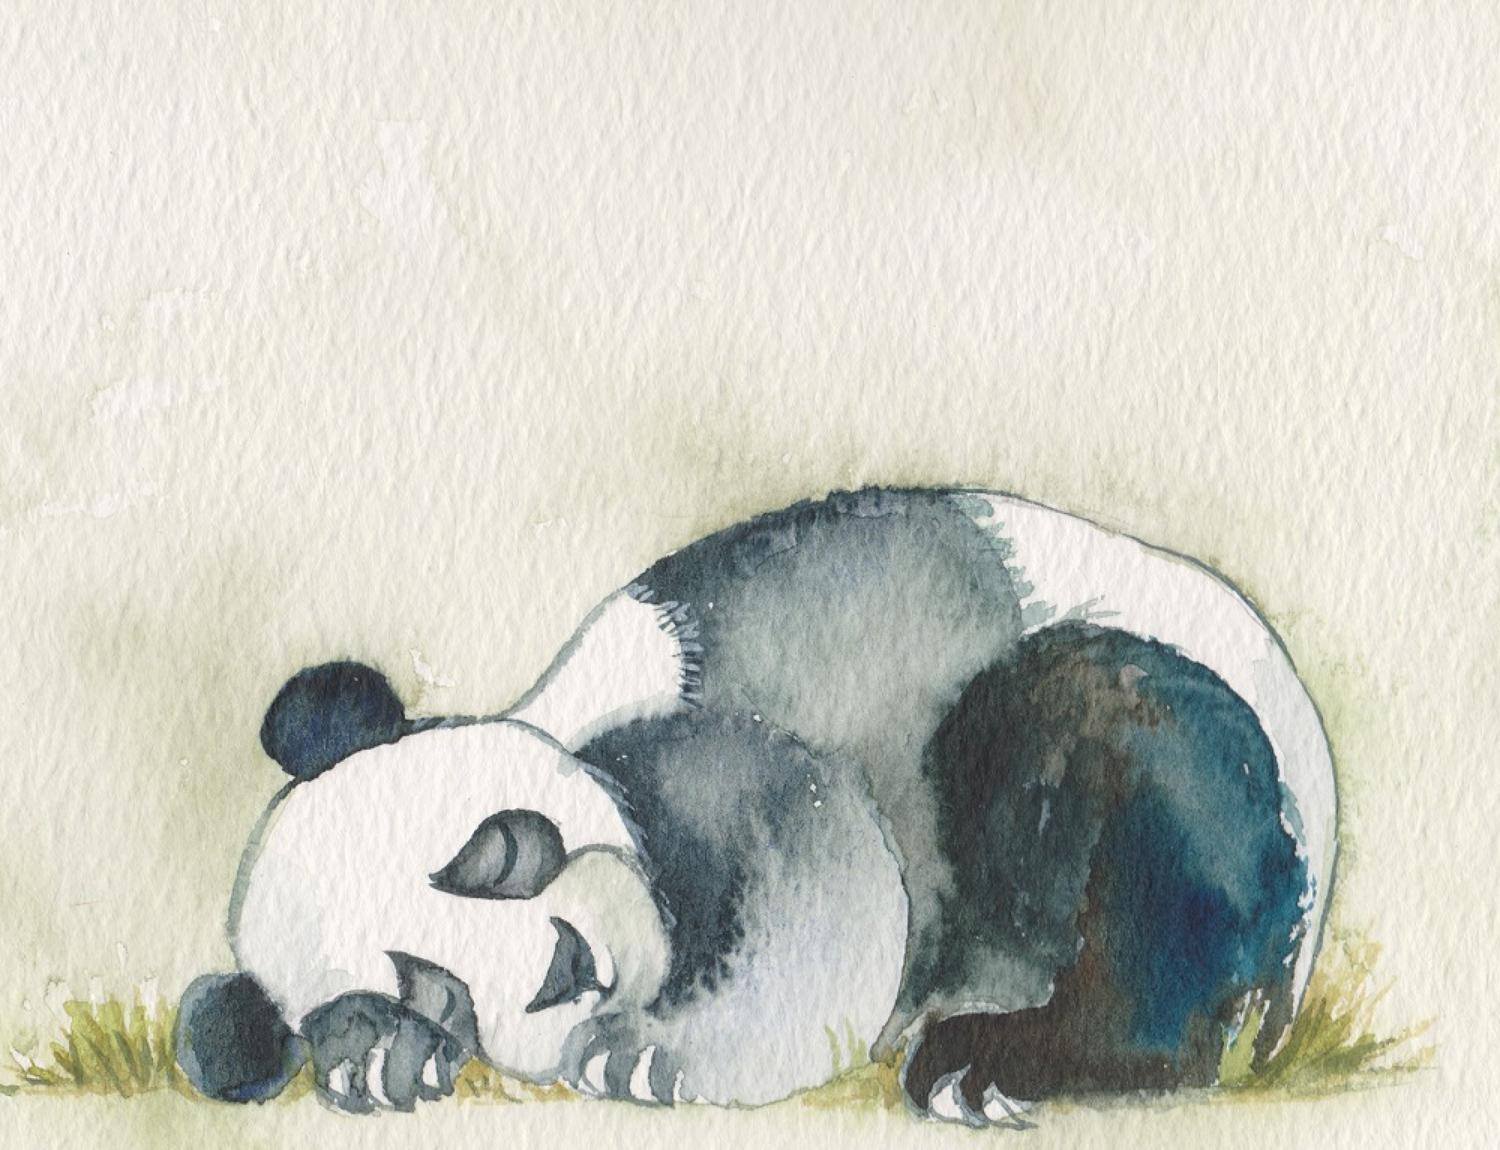 Young panda asleep